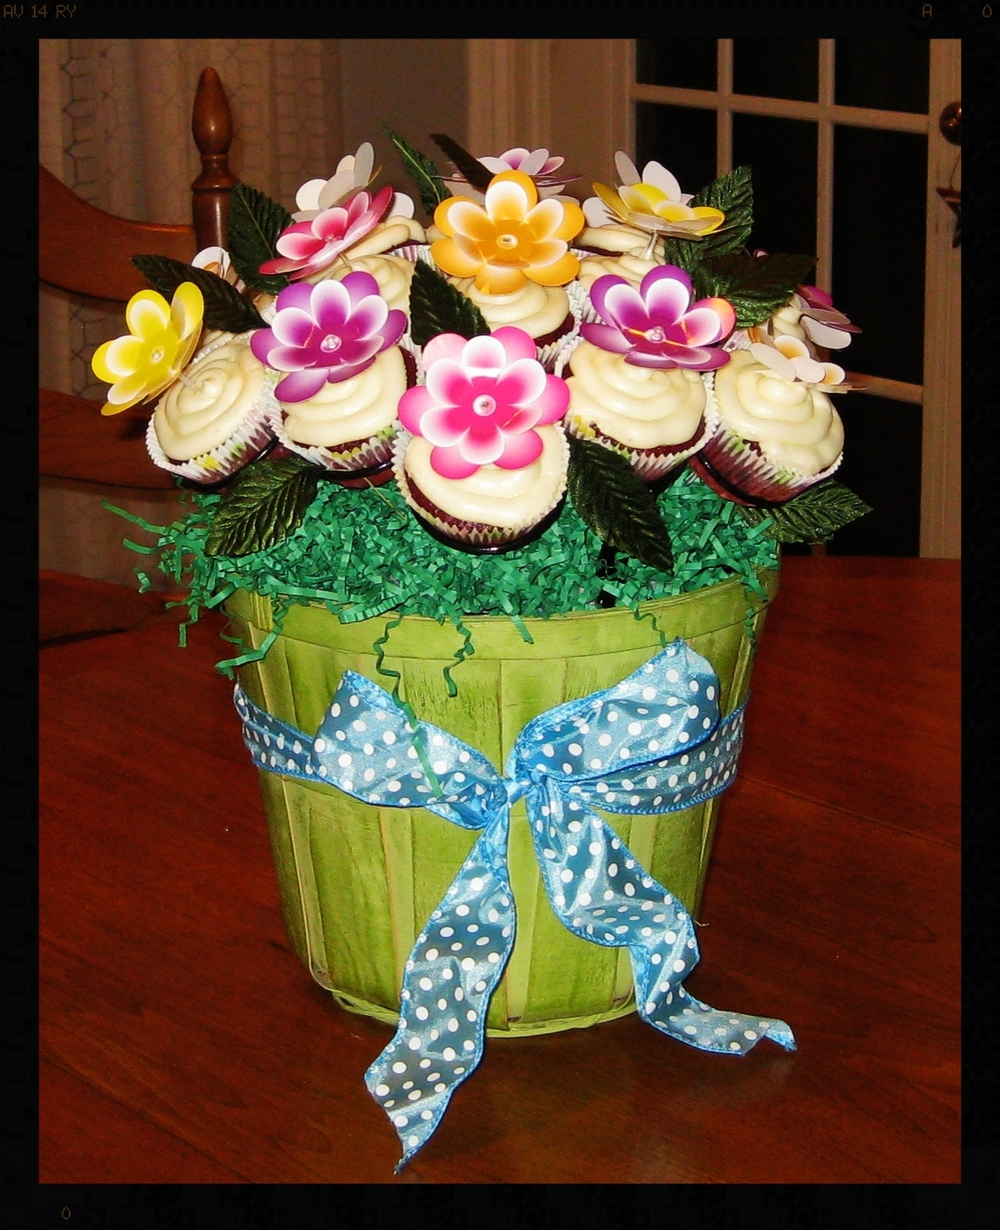 Kathy G. LOVES her new Cupcake Rack and we LOVE Kathy's Cupcake Bouquet!!!